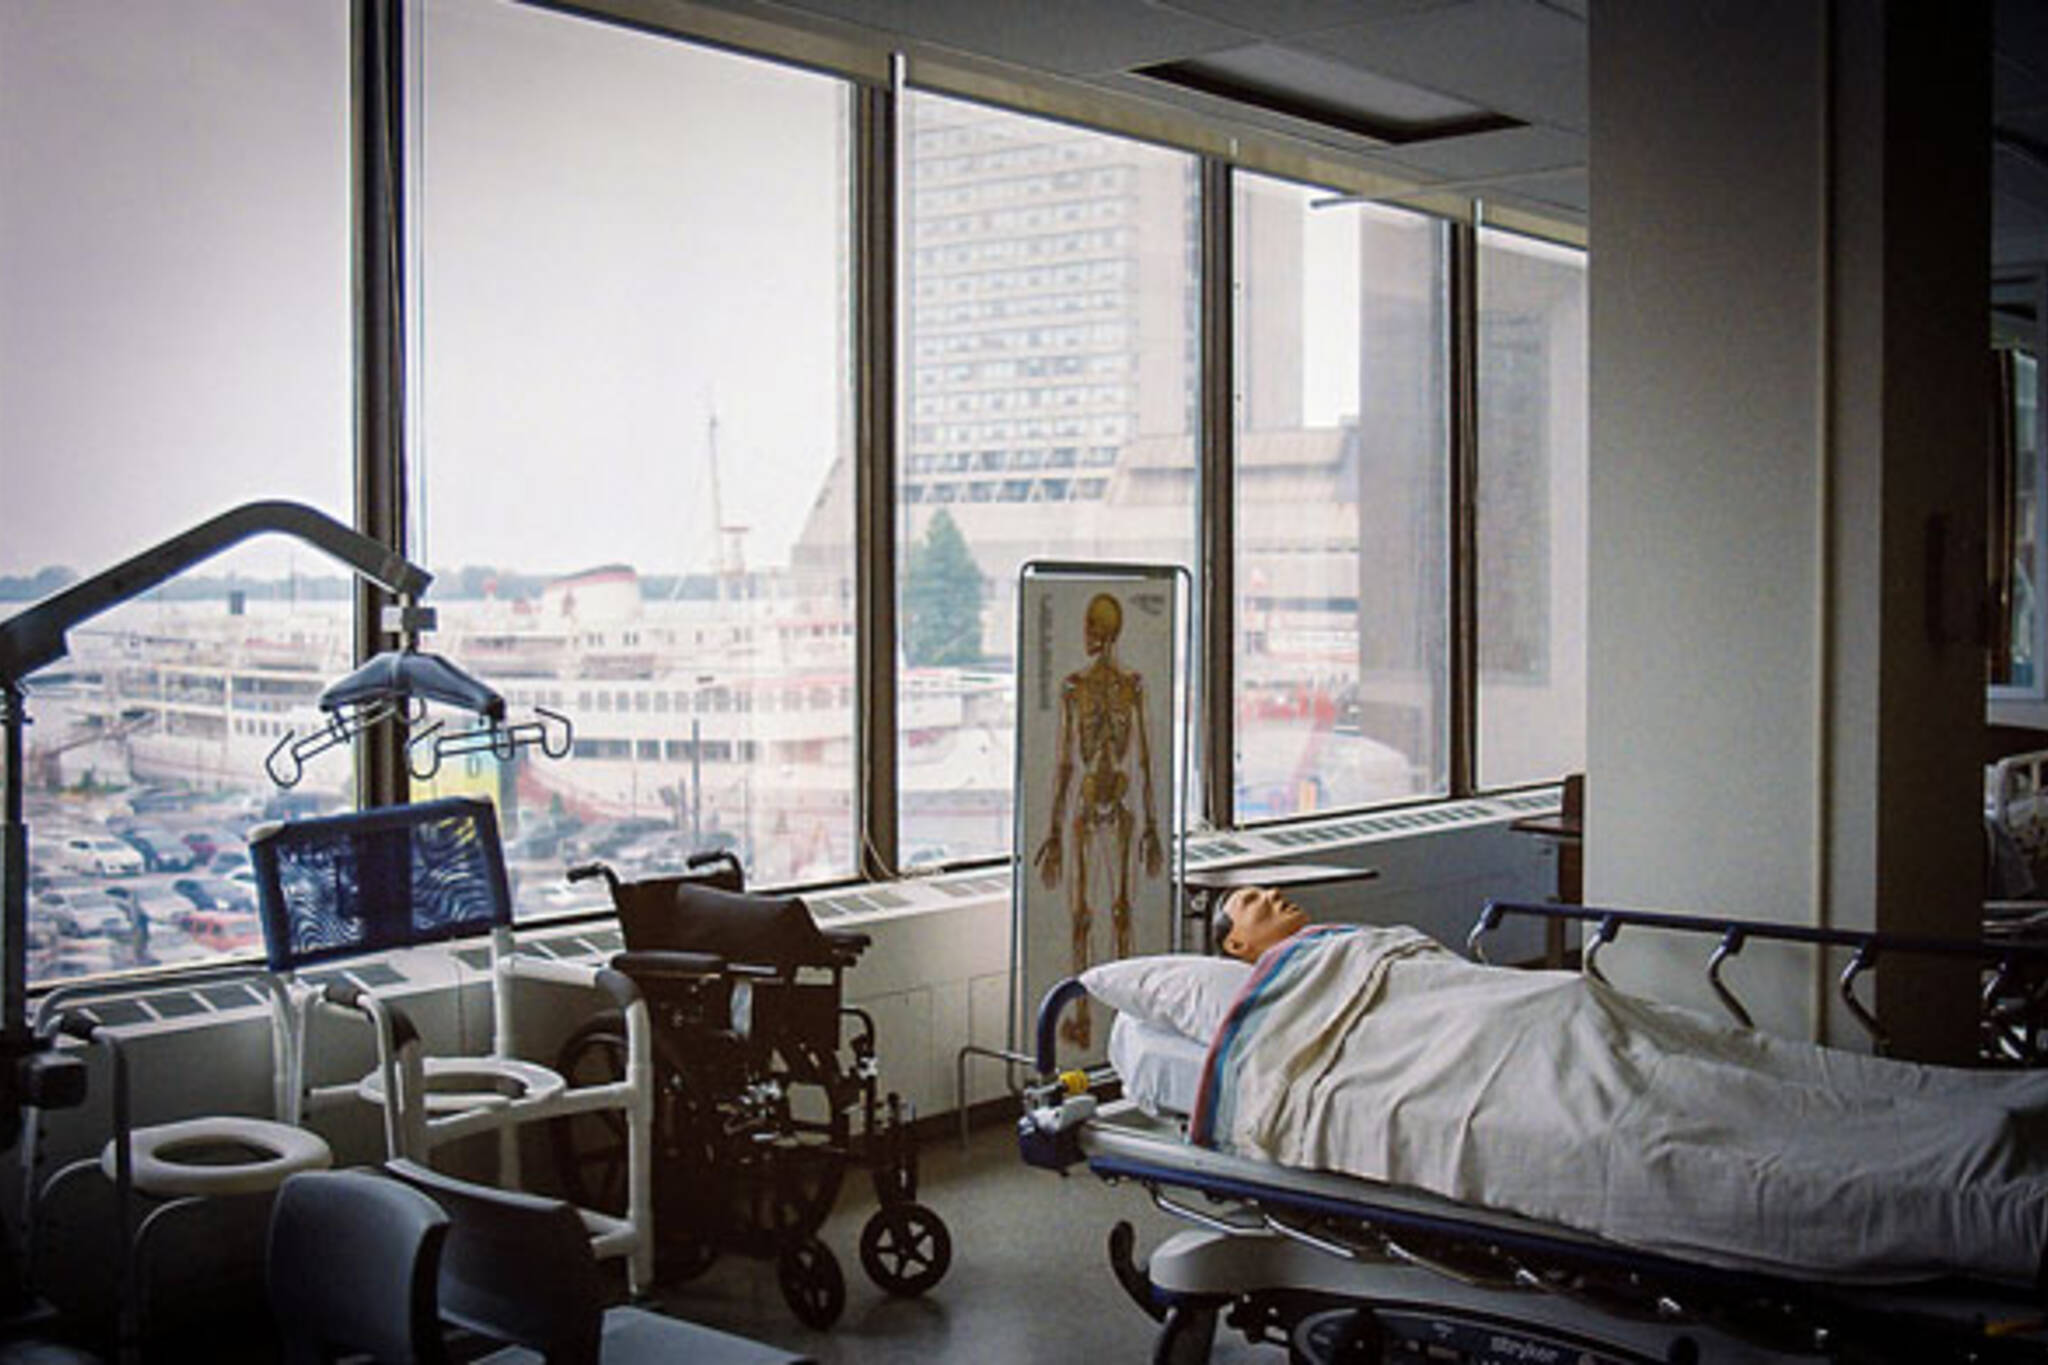 Bed with a view hospital